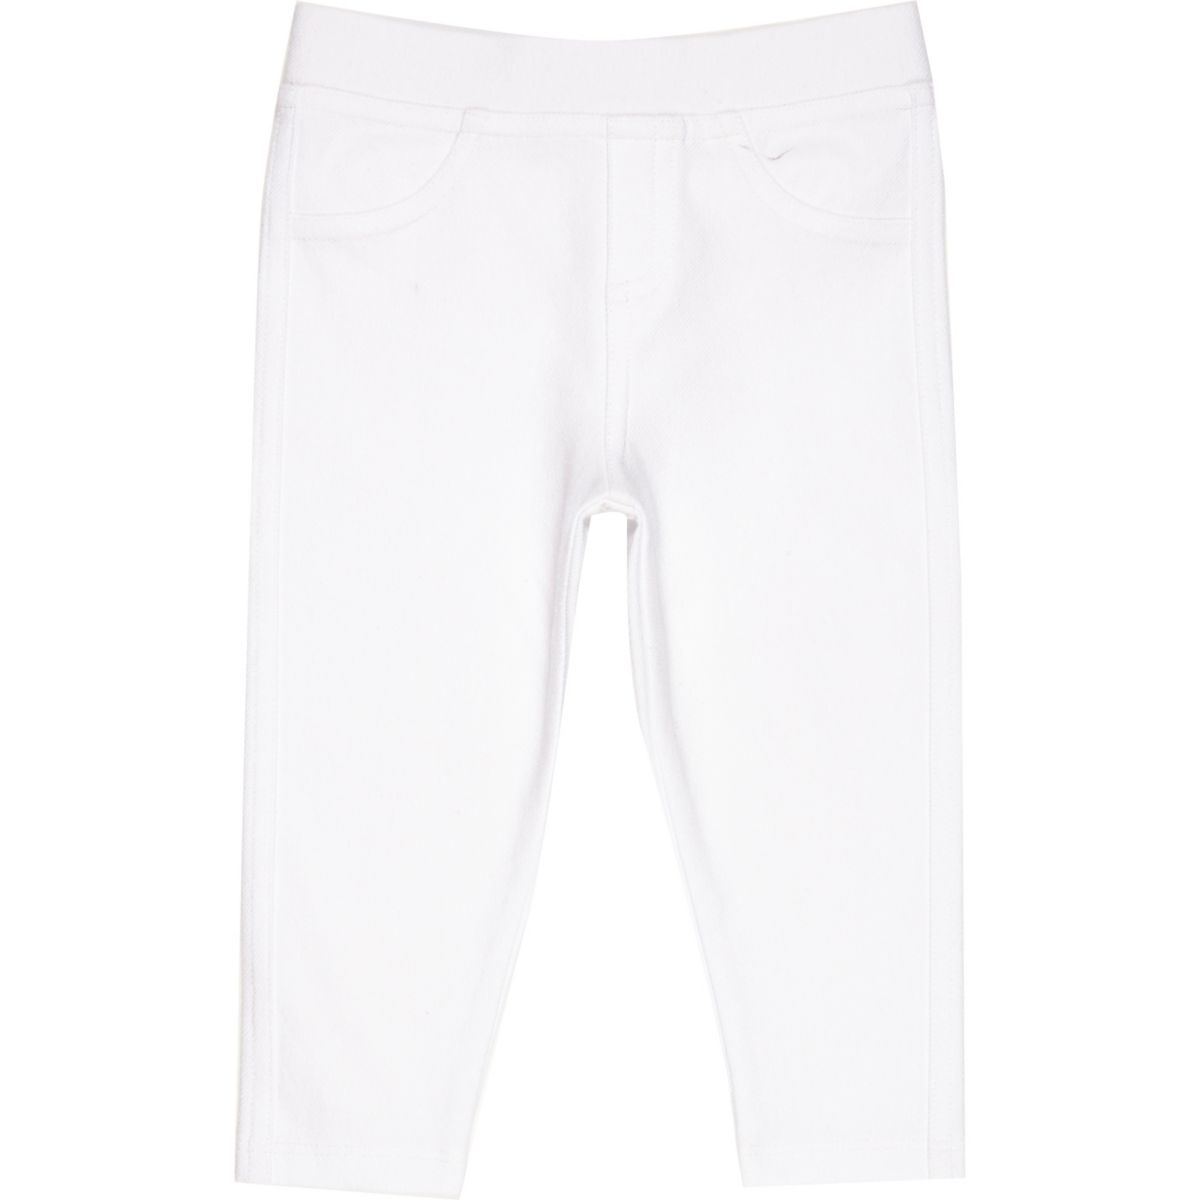 Legging imitation jean blanc mini fille